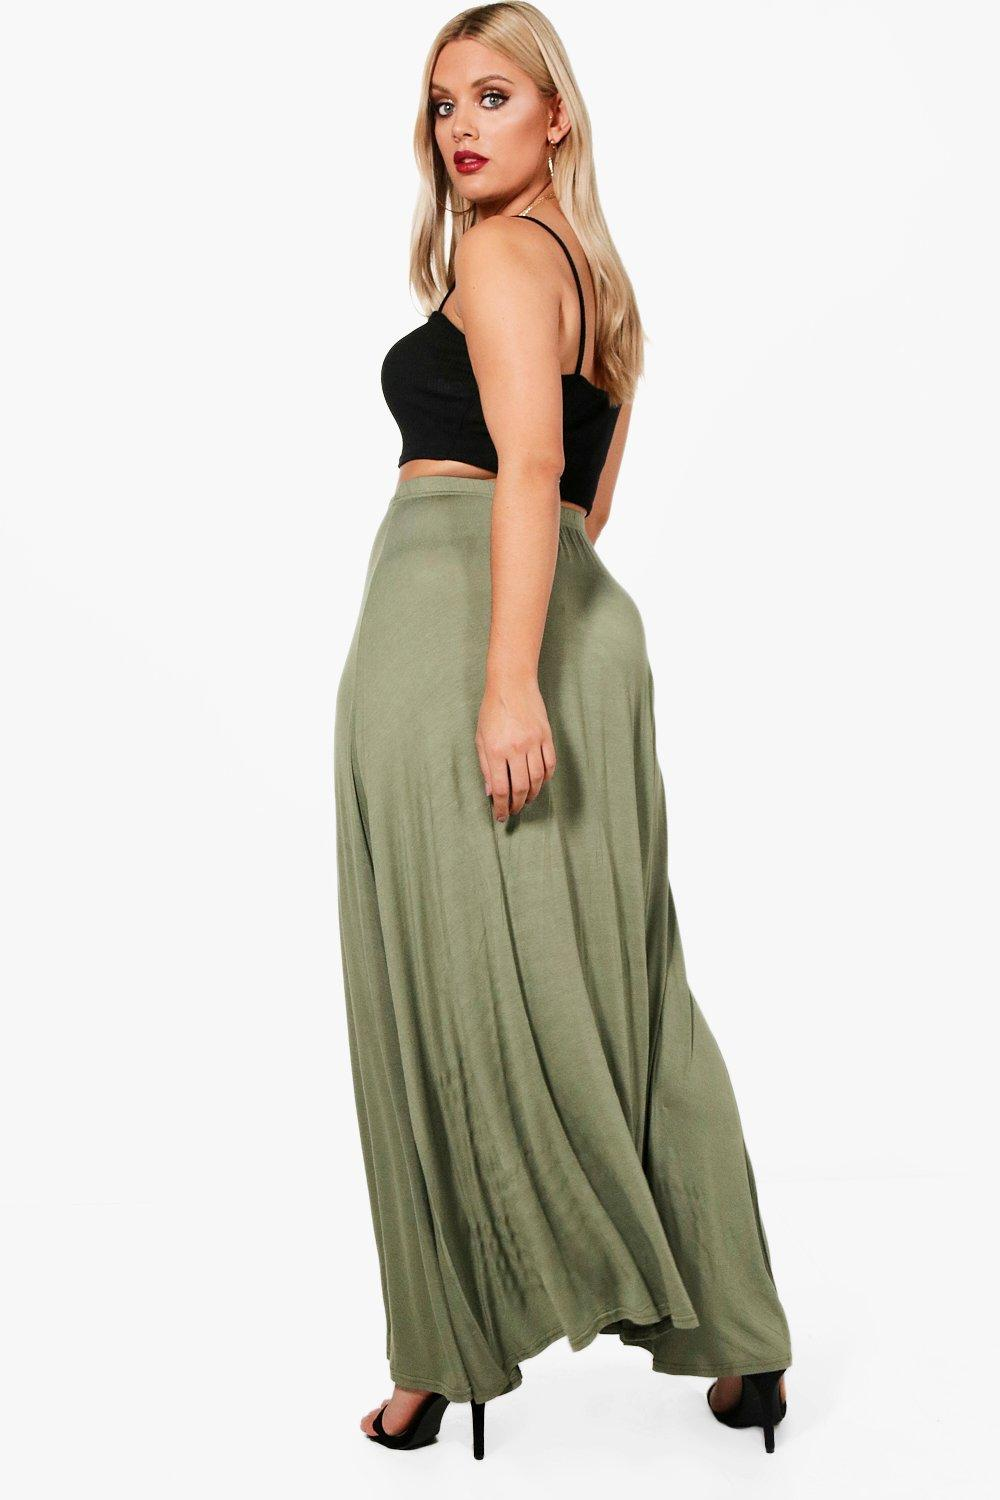 Boohoo Womens Eliza Button Through Maxi Skirt